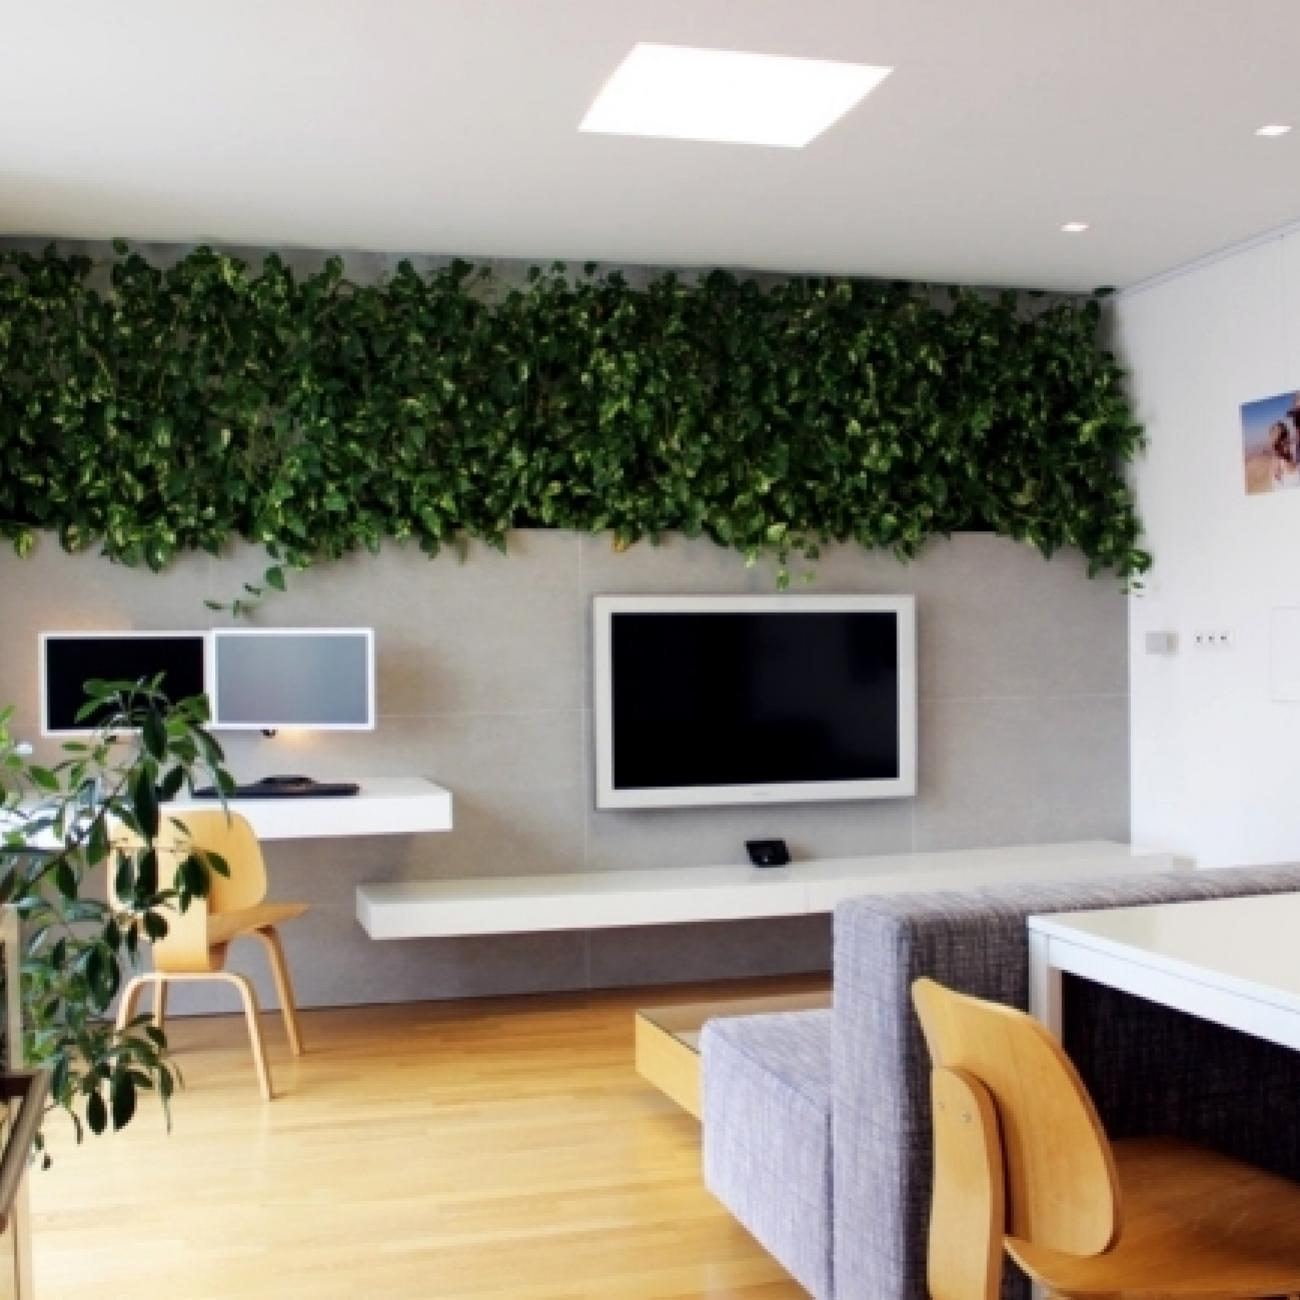 Interior Decoration With Plants